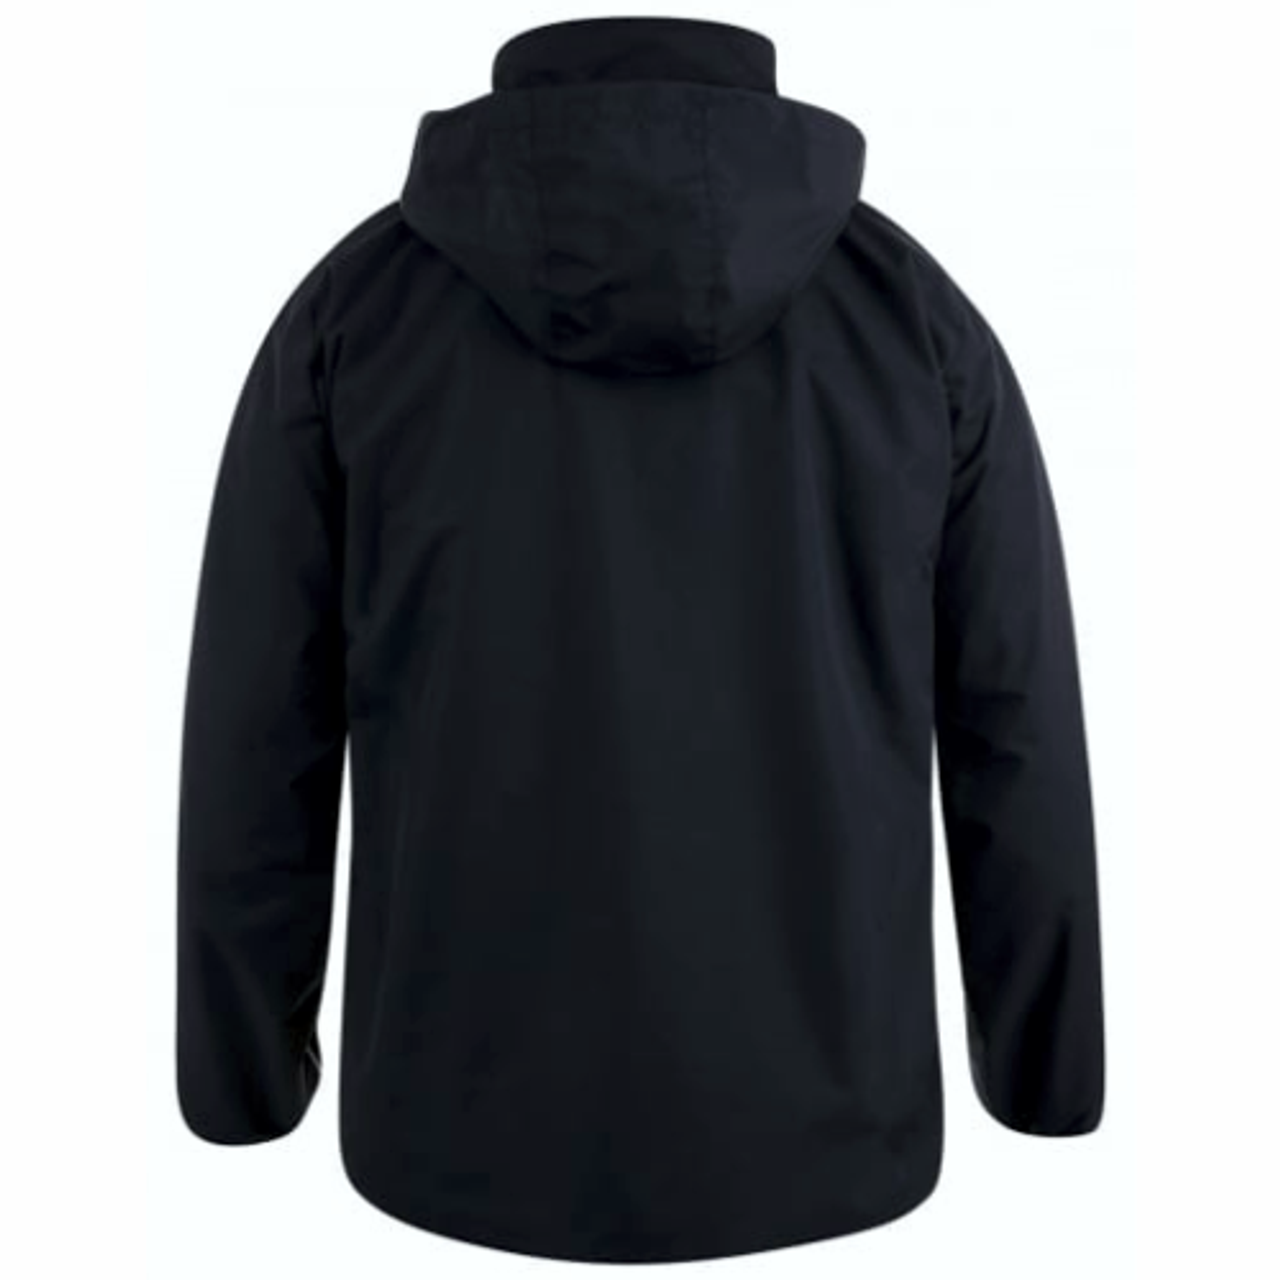 Shown with hood out. Hood is a tuck-away style and folds into the collar if desired.